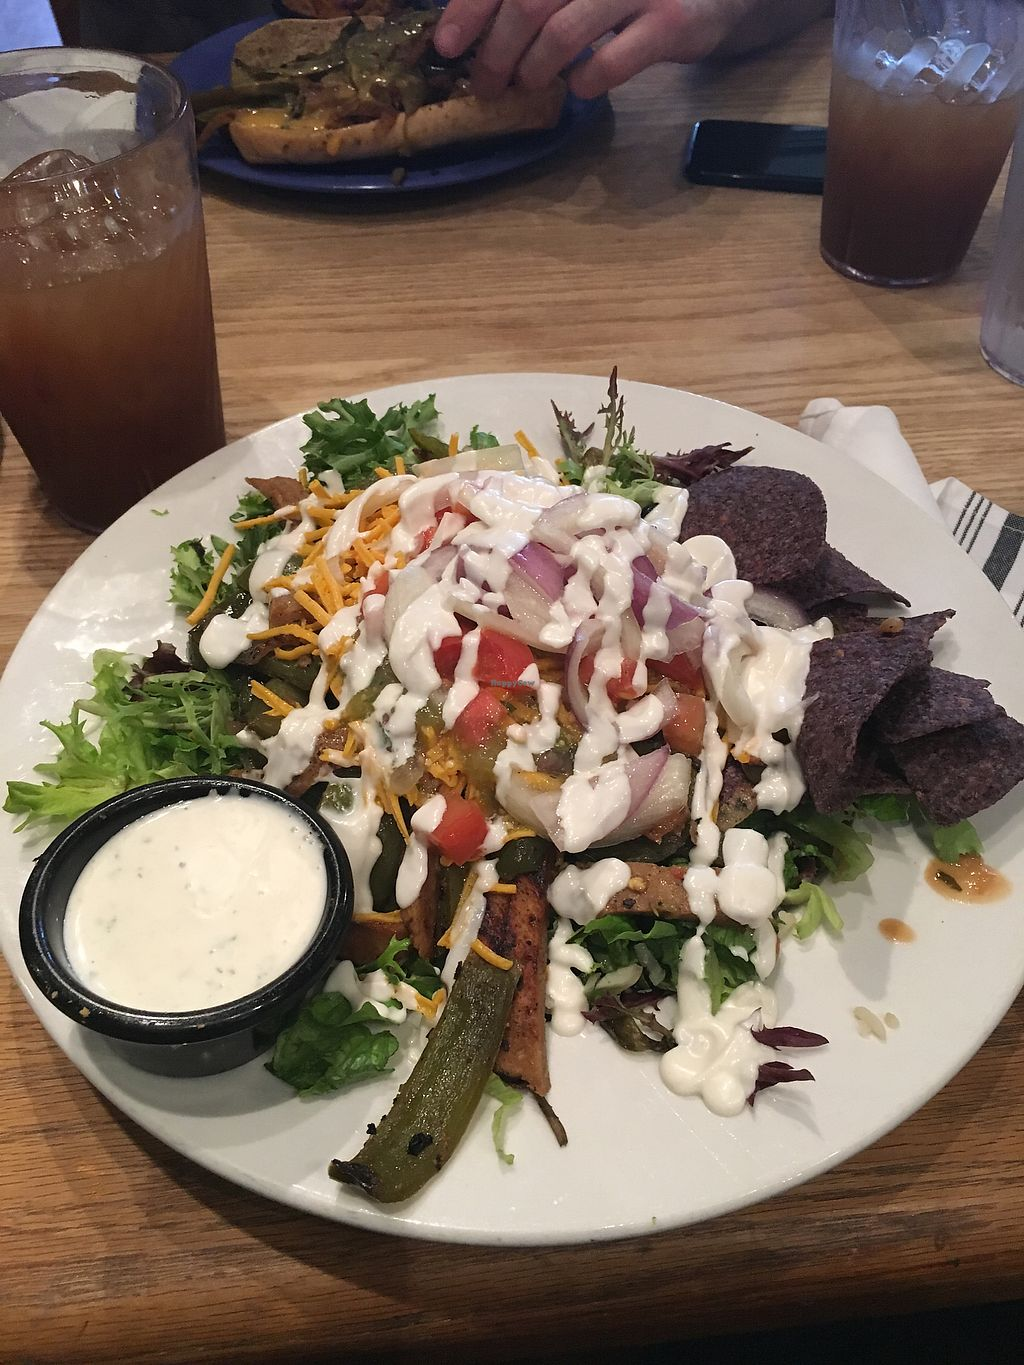 """Photo of The Wild Cow  by <a href=""""/members/profile/leenuhh"""">leenuhh</a> <br/>Amazing, to die for taco salad! I added peppers and seitan  <br/> April 3, 2018  - <a href='/contact/abuse/image/19759/380033'>Report</a>"""